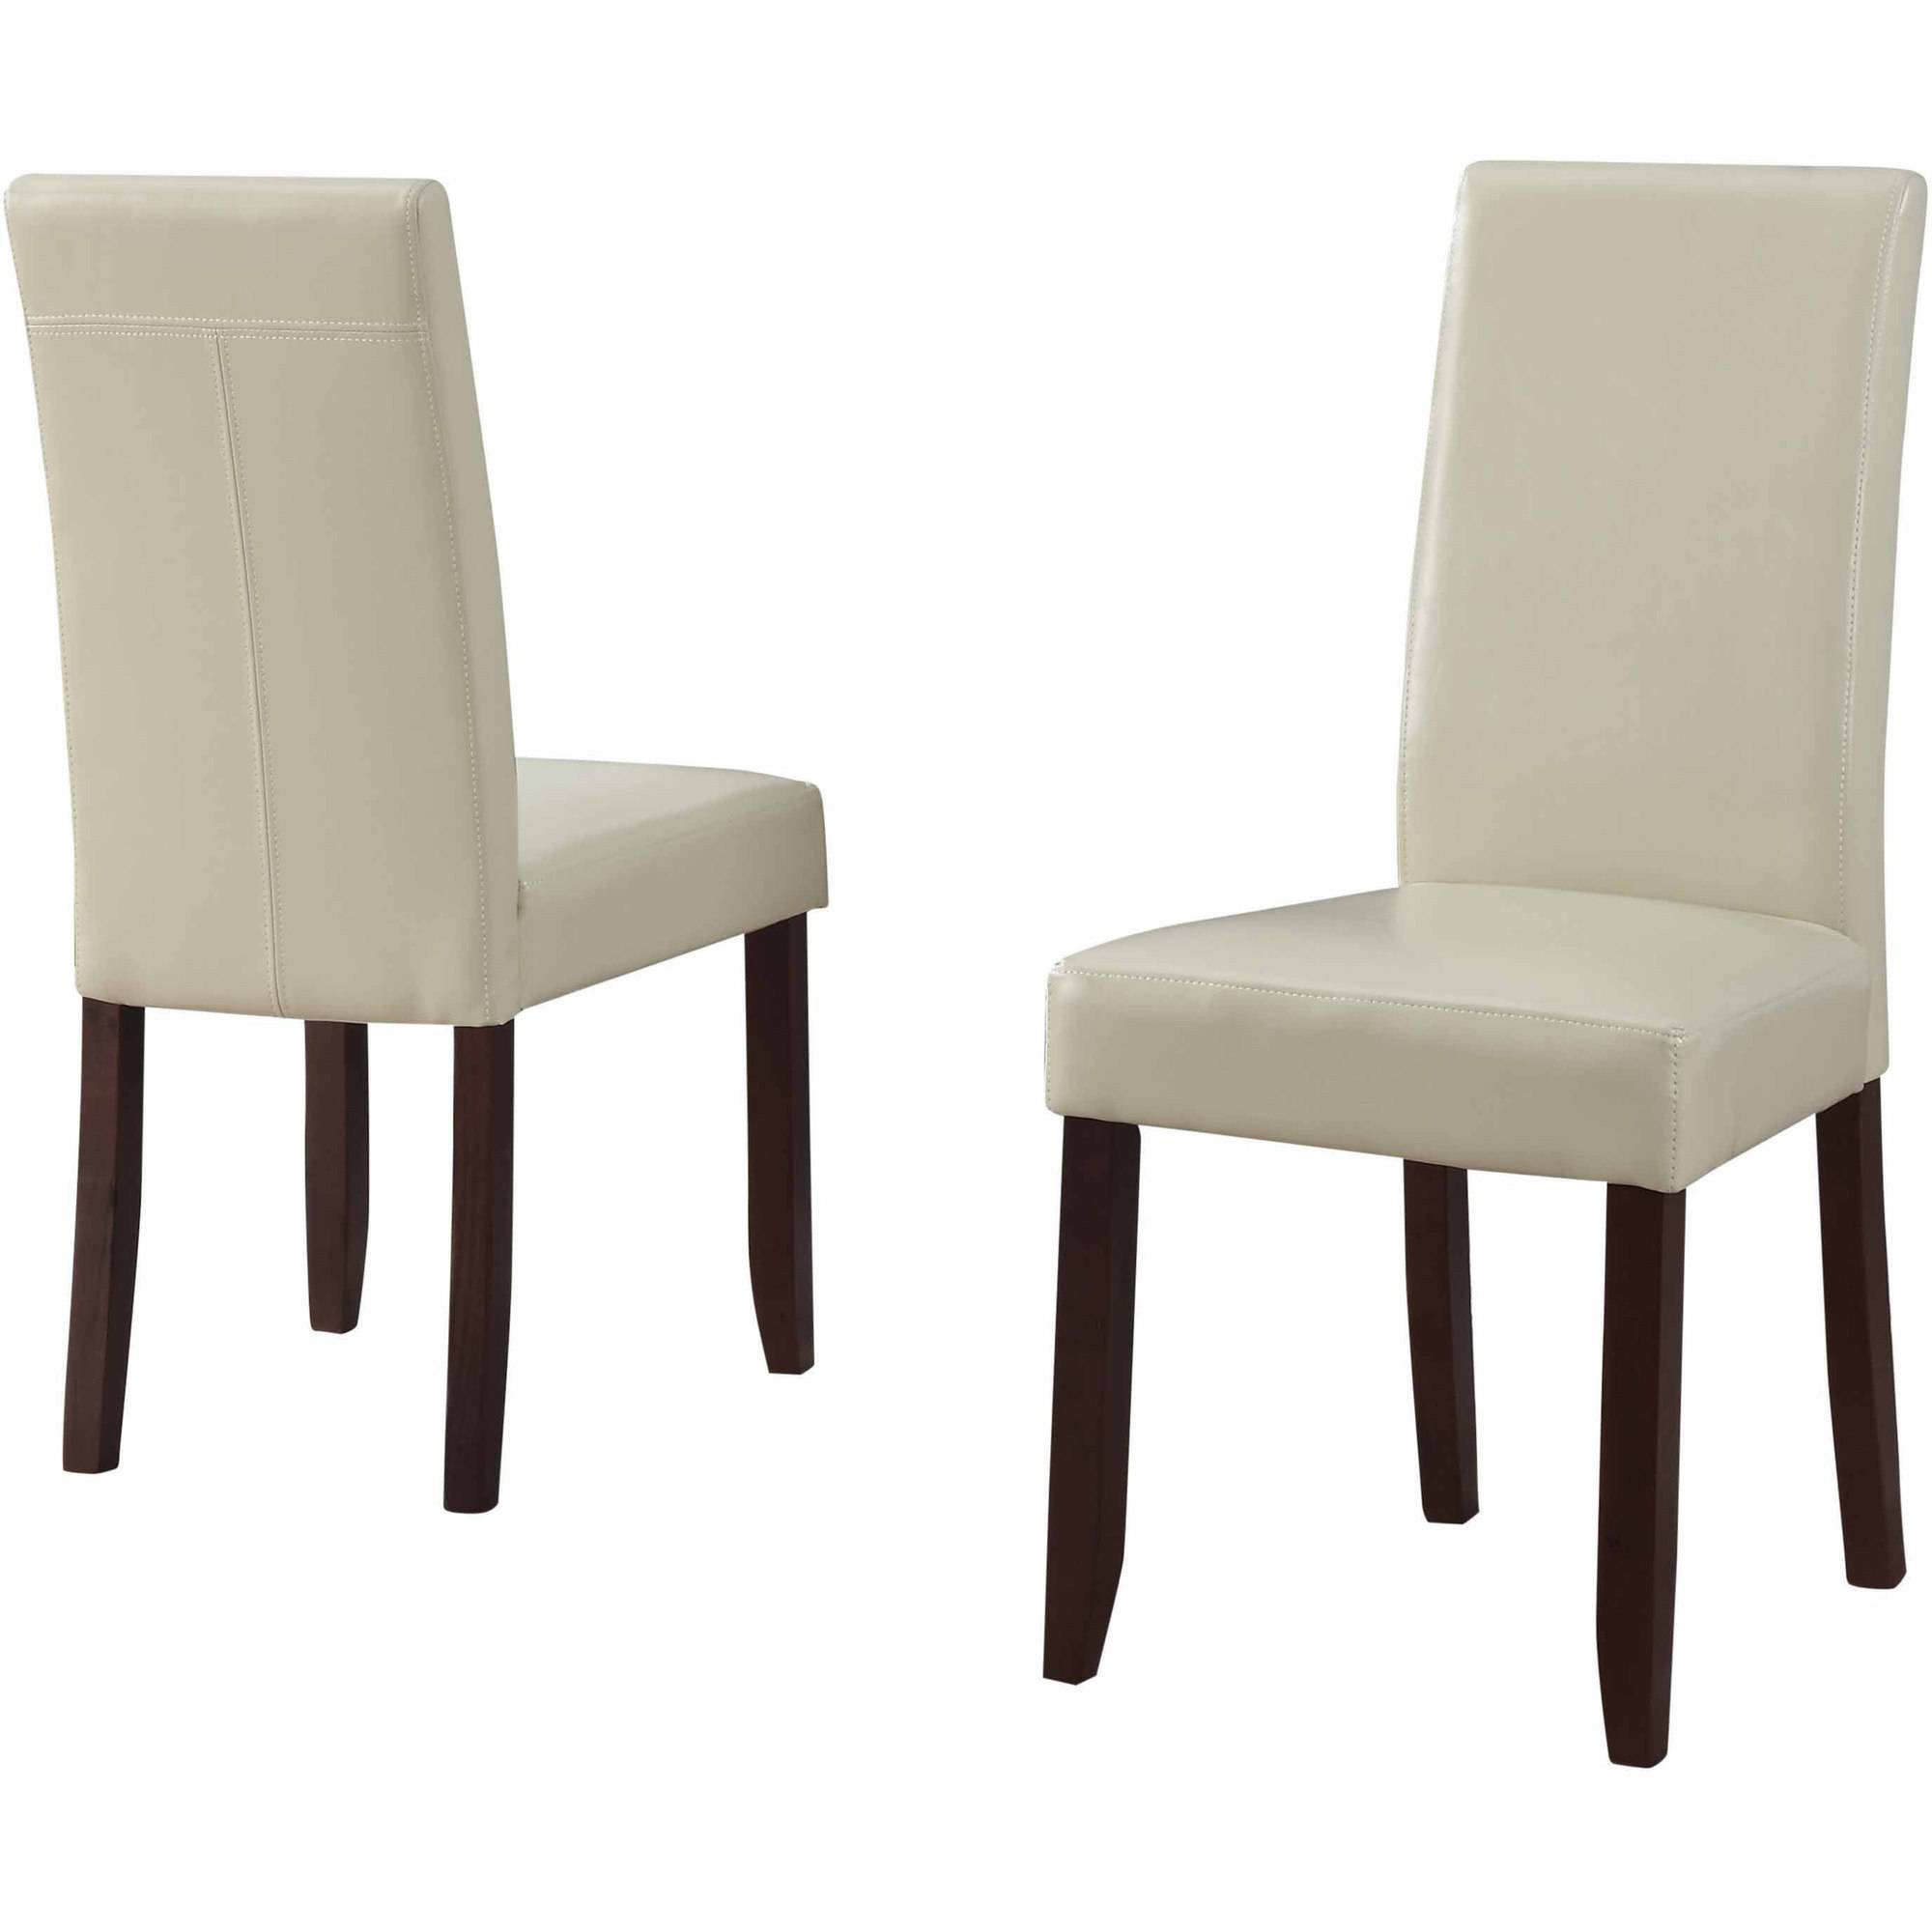 simpli home acadian parson dining chair (set of 2) - walmart.com QJCRKKW